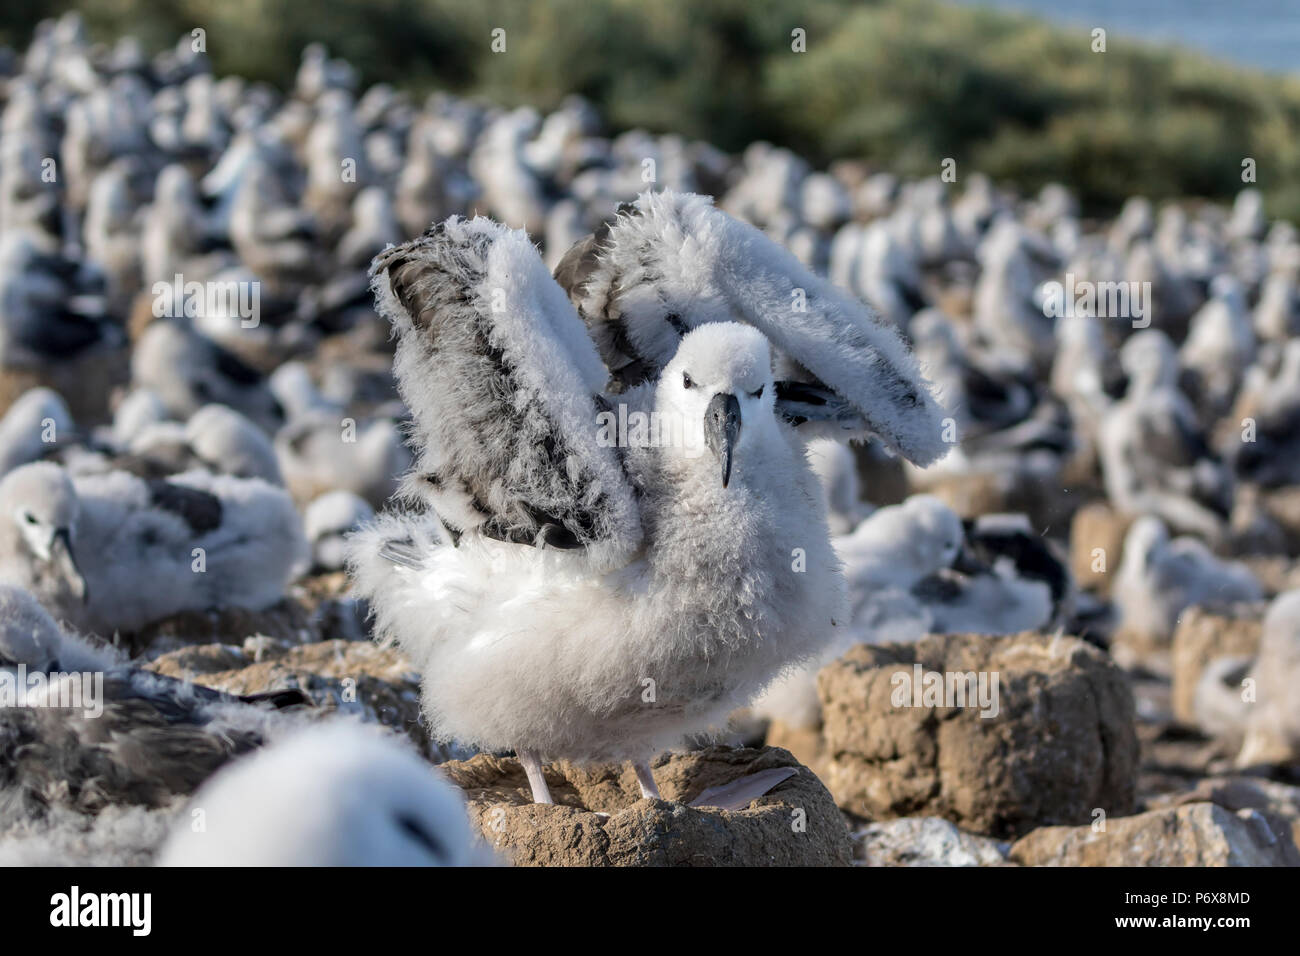 Black-browed albatross chick on nest stretching its wings at Steeple Jason Island, Falkland Islands Stock Photo